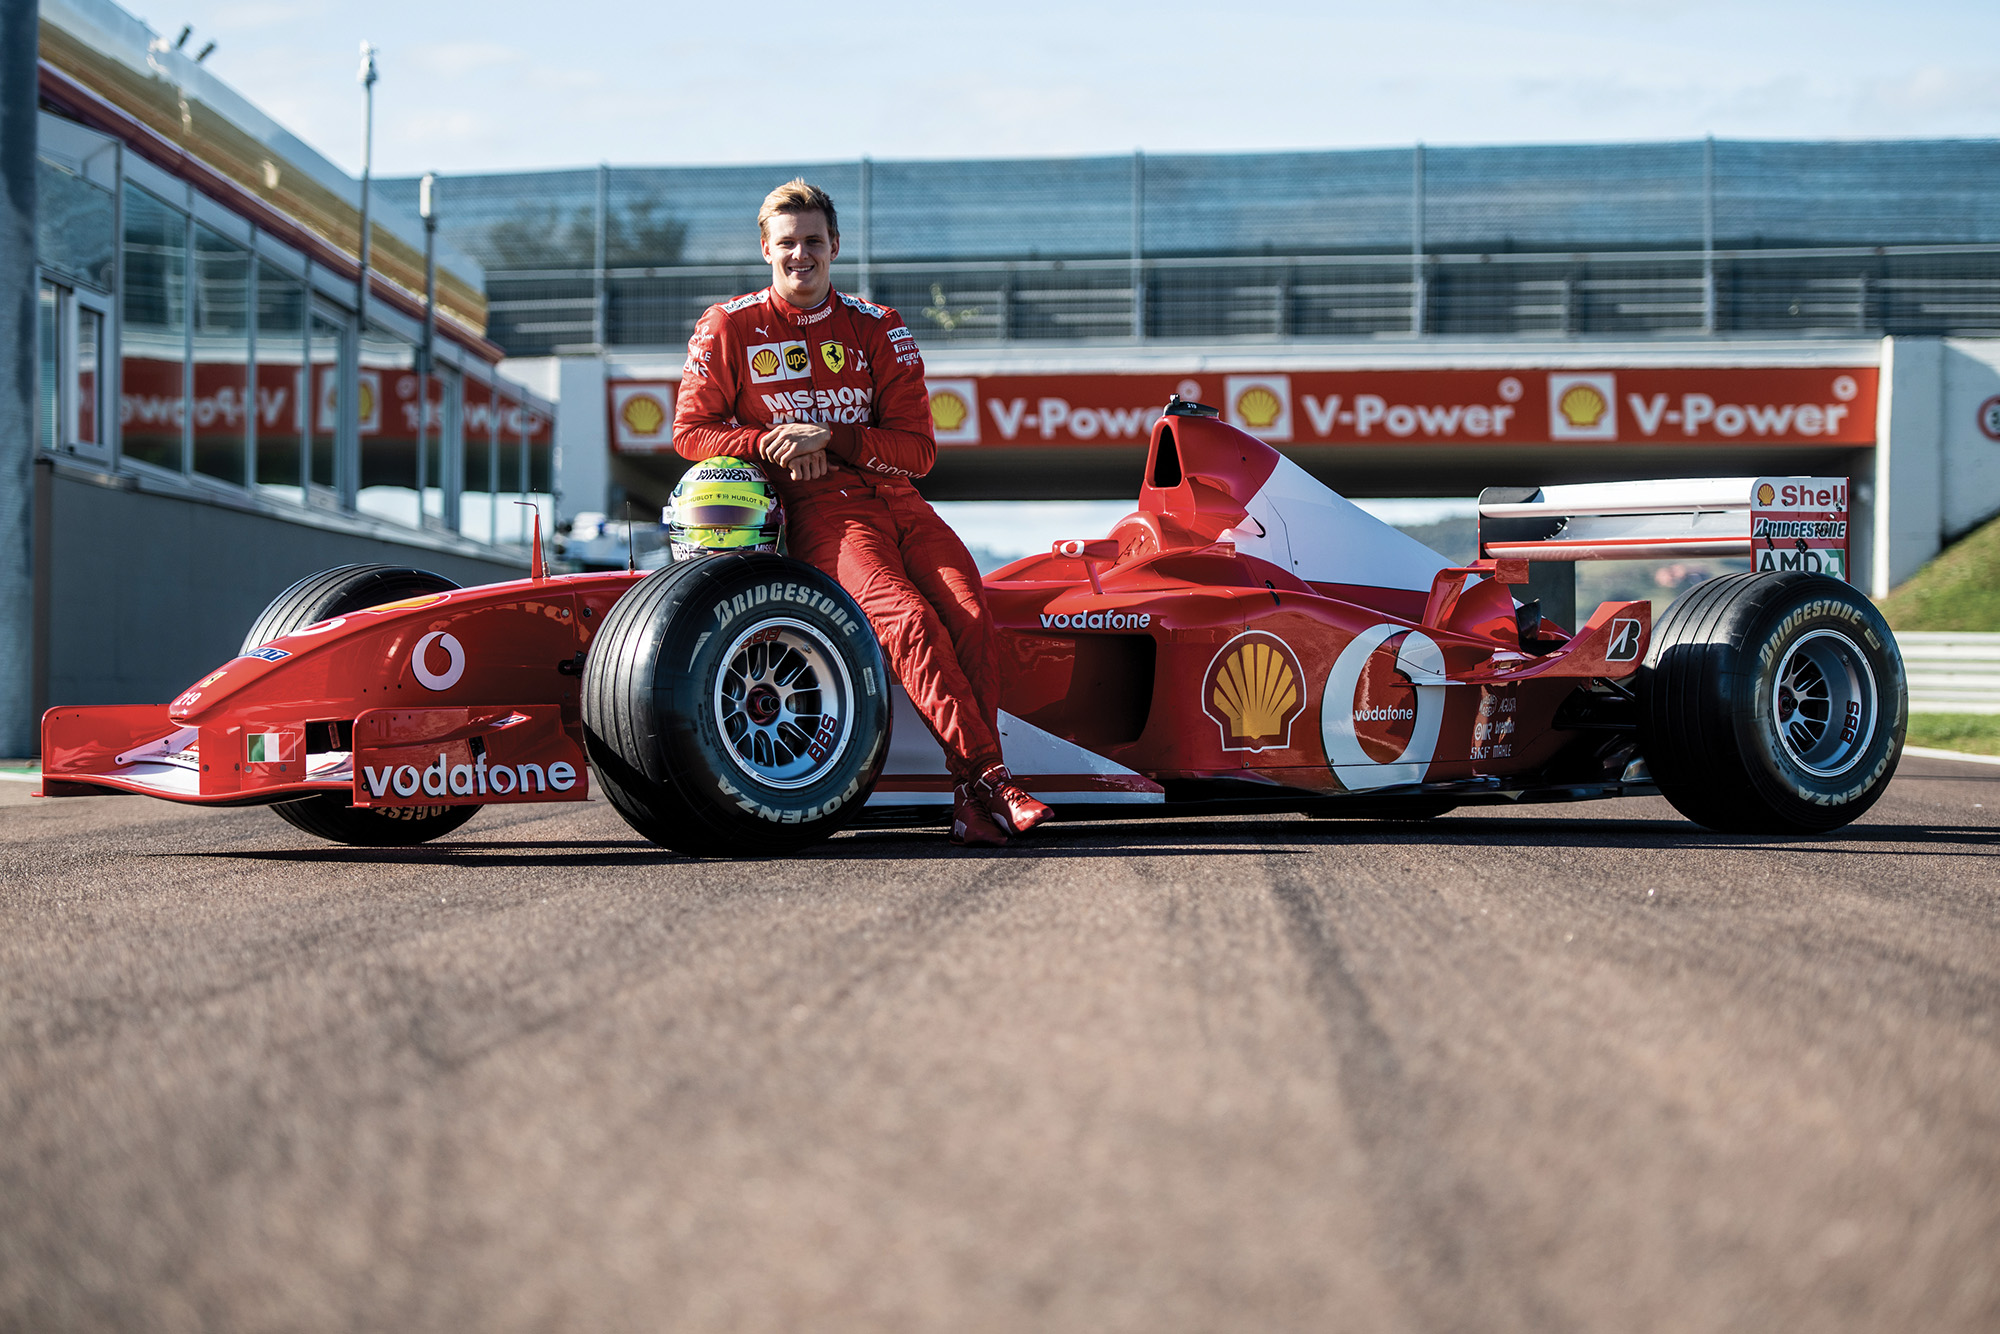 Mick Schumacher with his father's 2002 championship winning Ferrari F2002